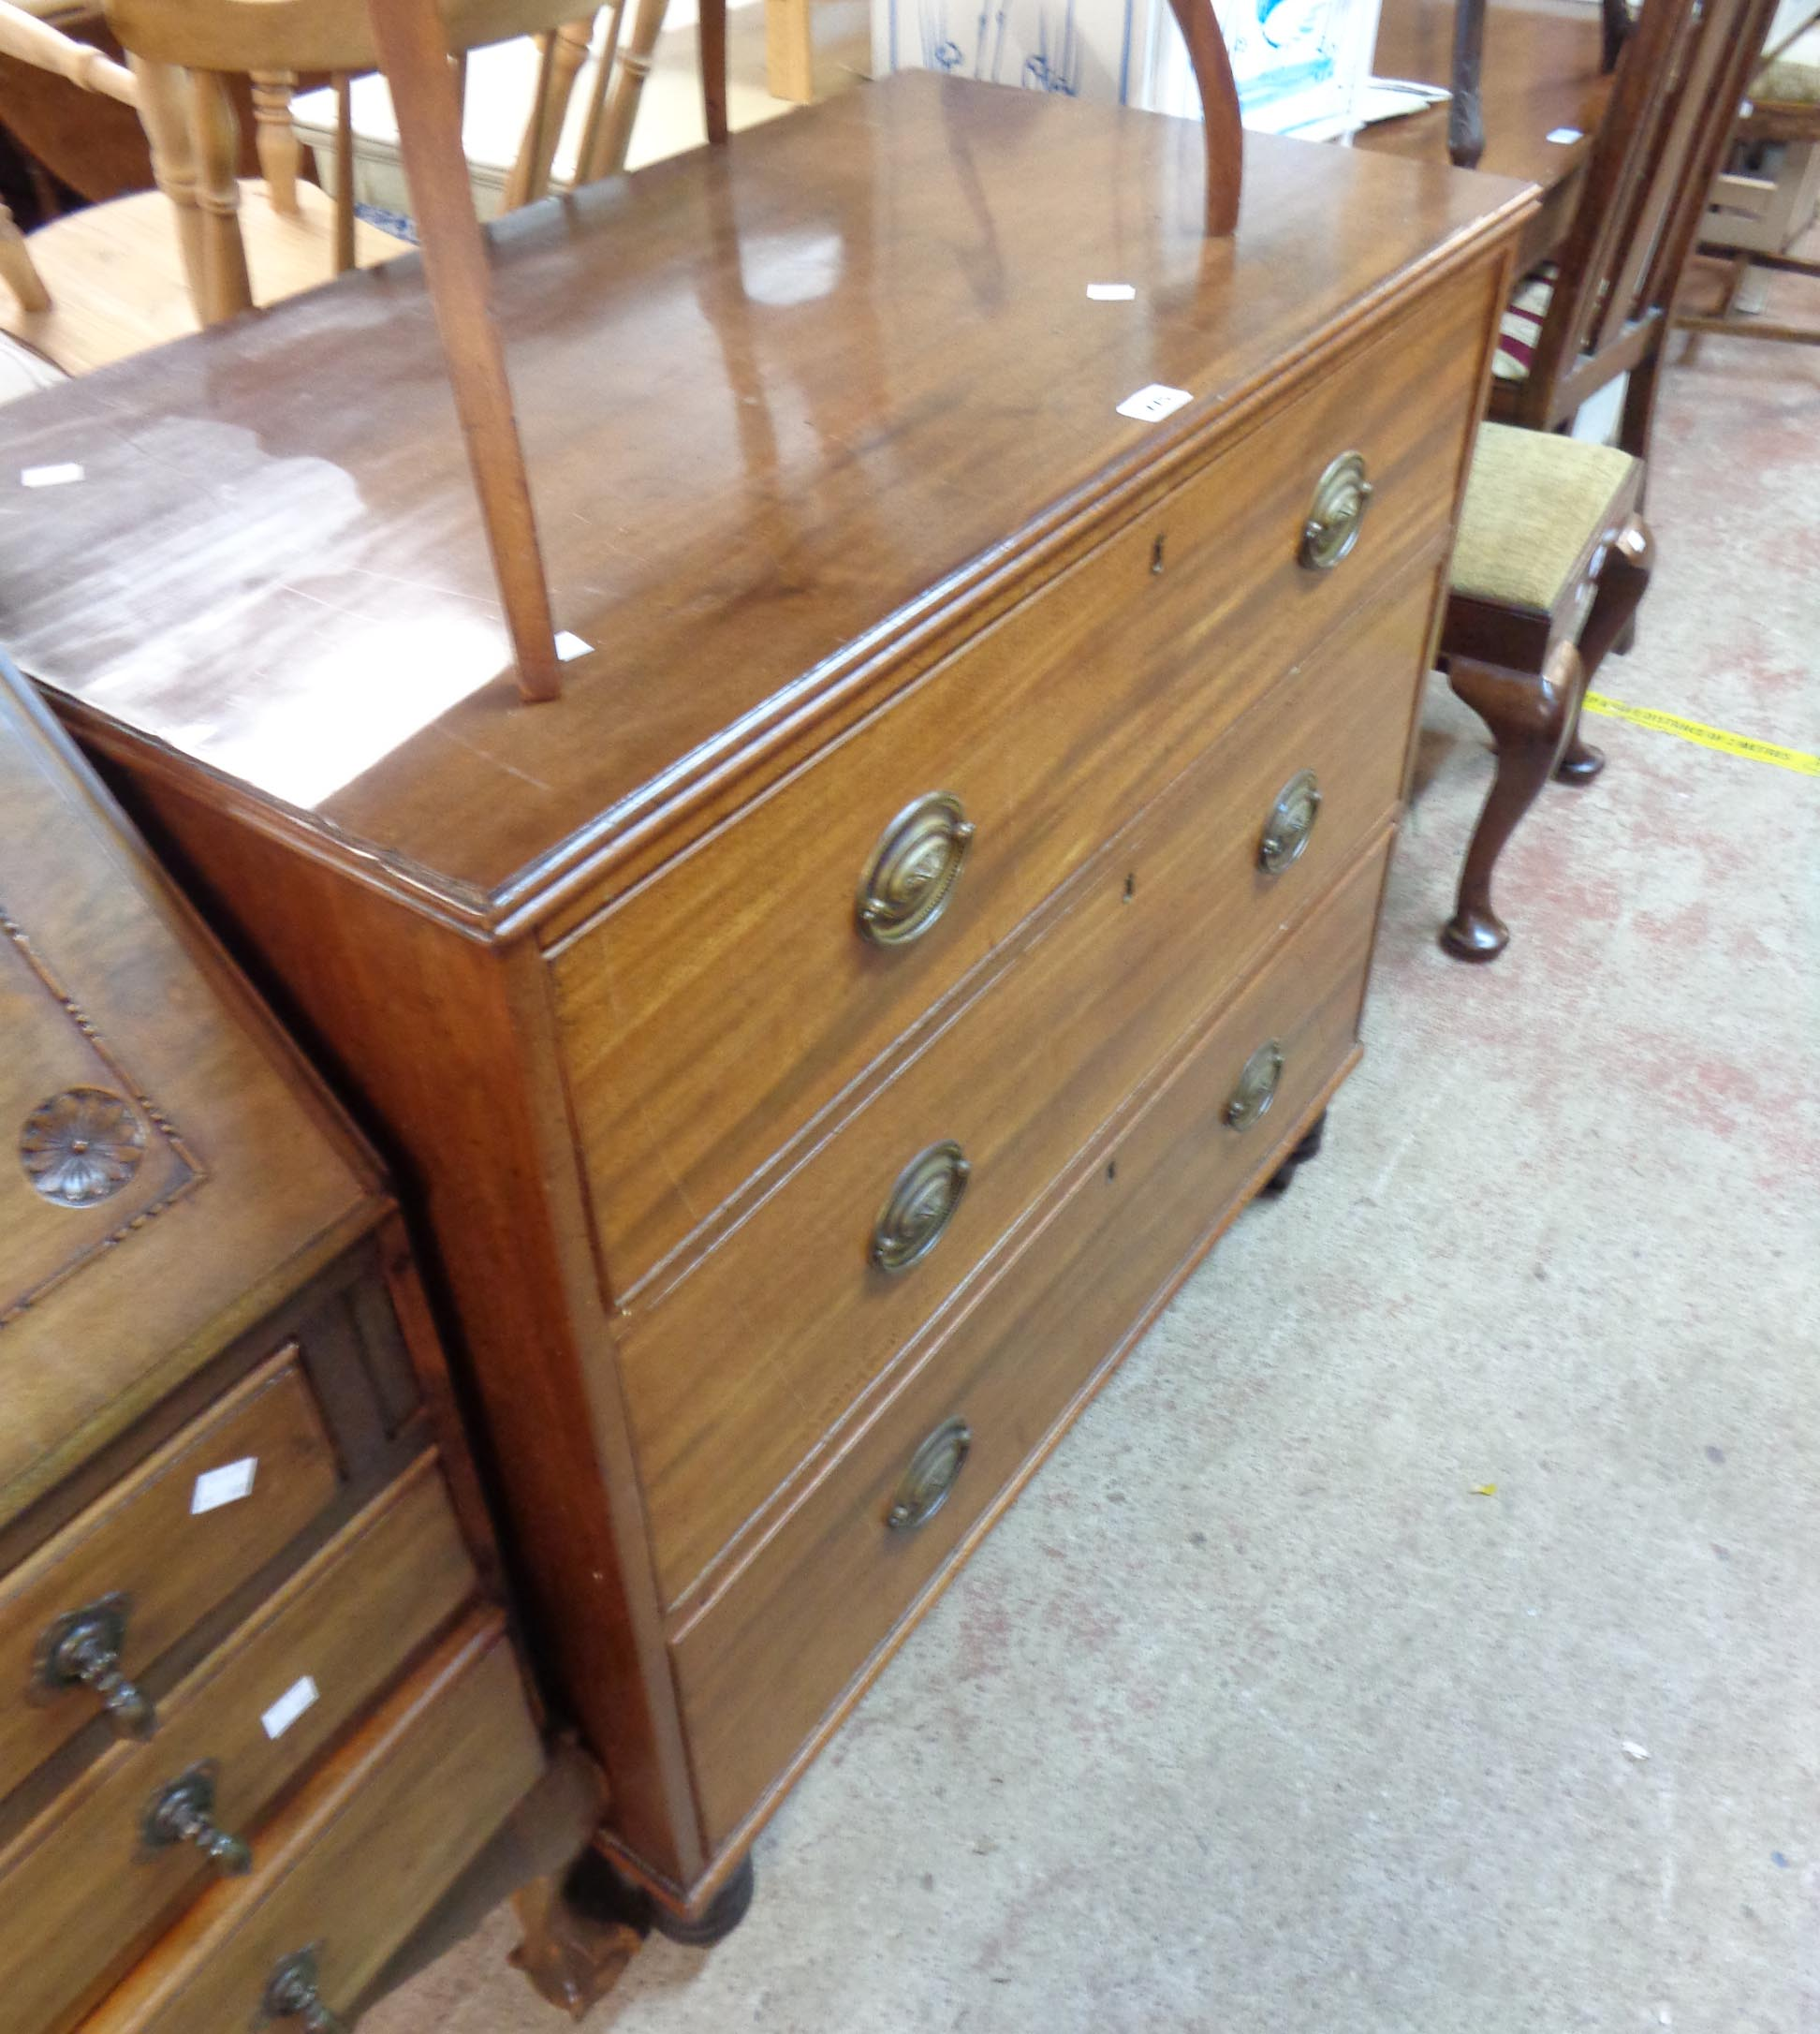 A 94cm 19th Century mahogany chest of three long graduated drawers, set on later turned legs - top